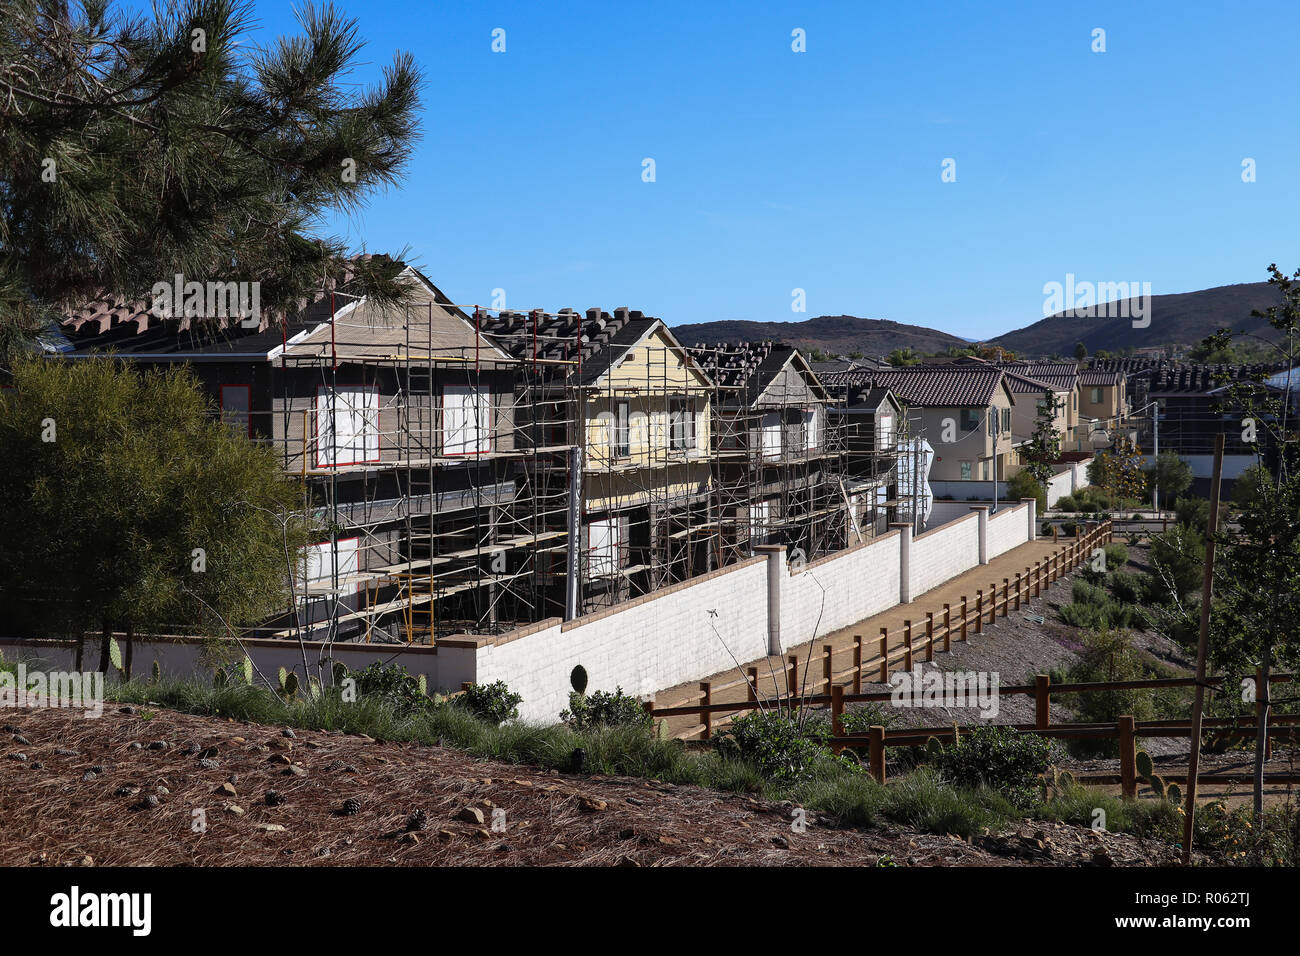 Four new family homes under construction and surrounded by scaffolding in a suburban neighborhood with public trails, fencing, copy space in blue sky Stock Photo